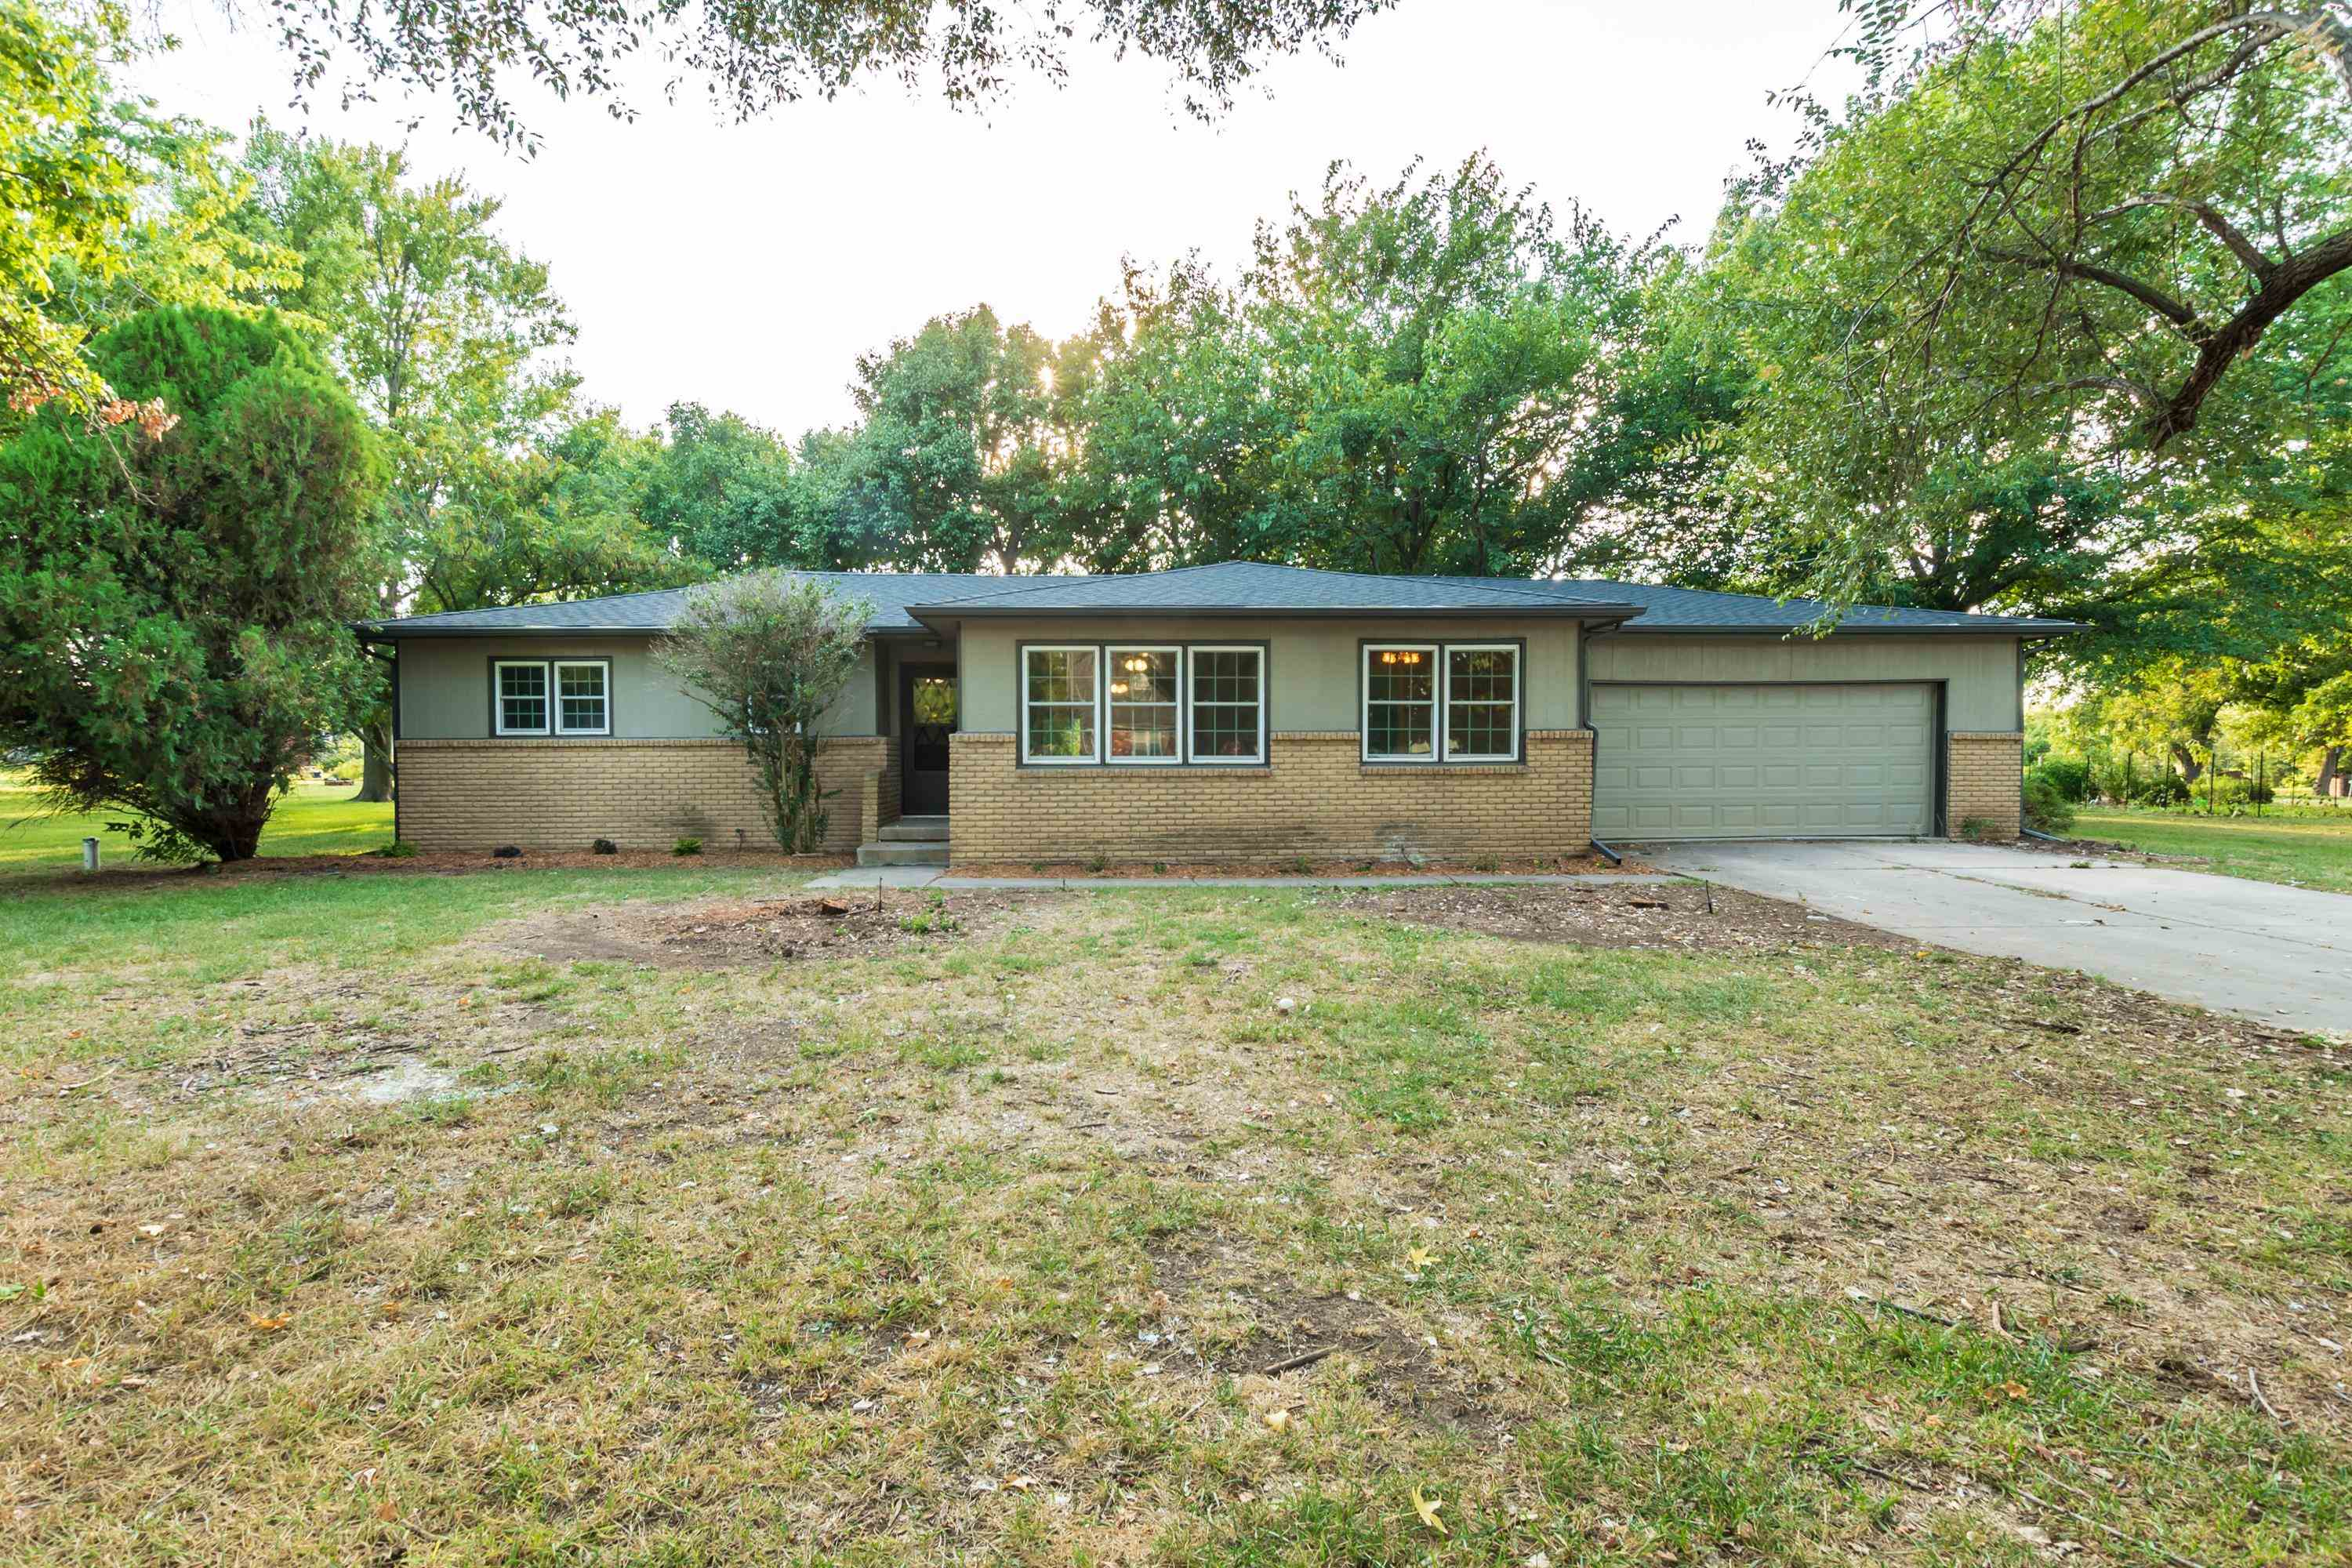 Country feel, city convenience! Total remodel in this 3 bedrooms, 2 bath sprawling ranch offers the